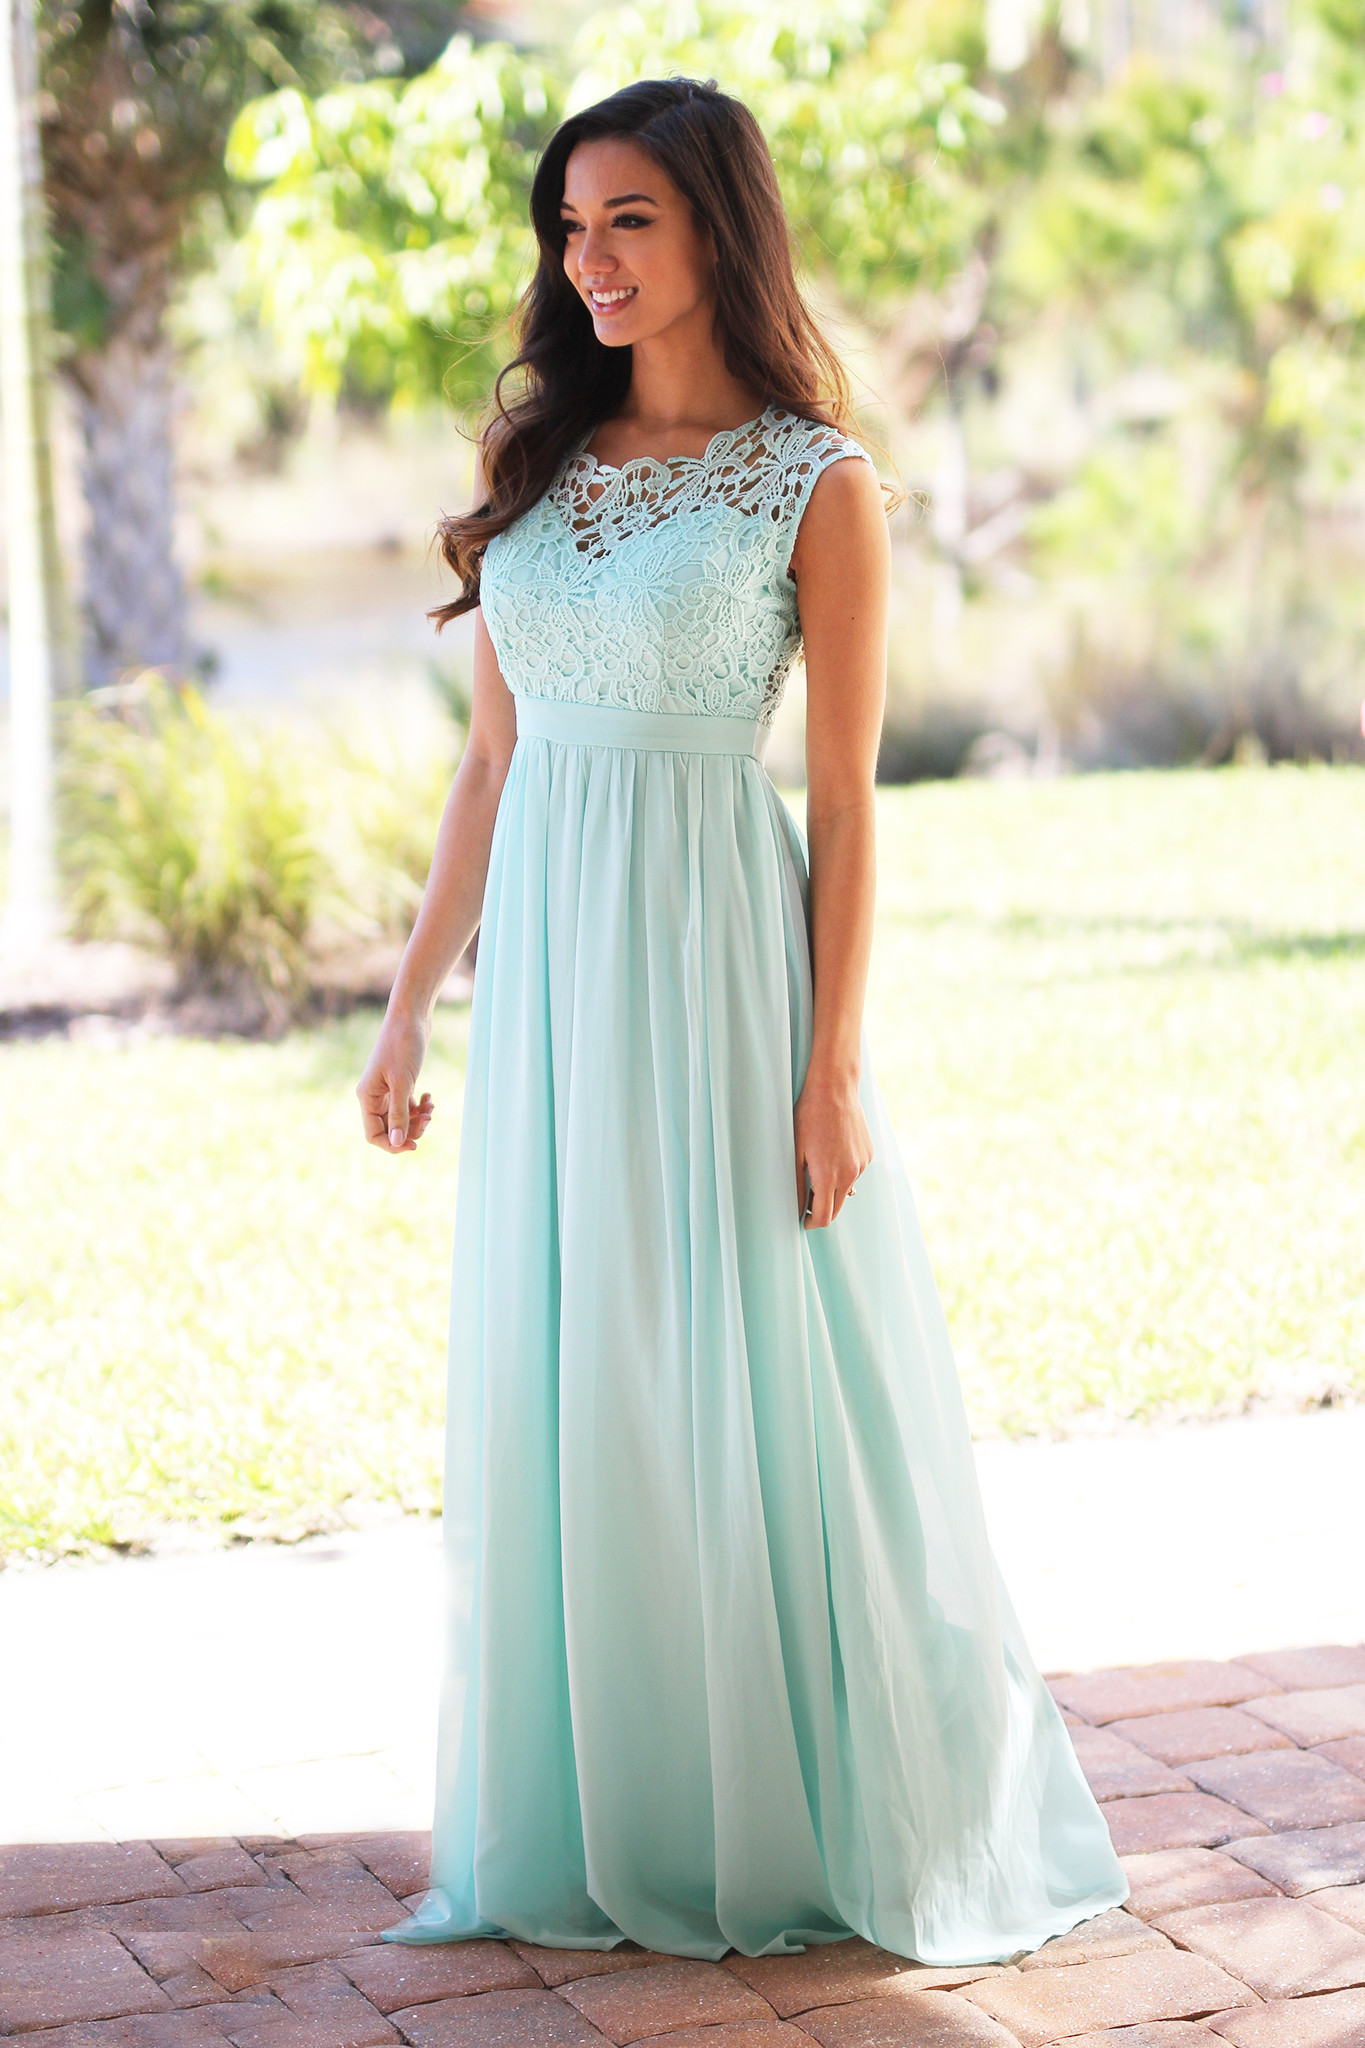 c8cda94cb4e9 Mint Crochet Maxi Dress with Tulle Back